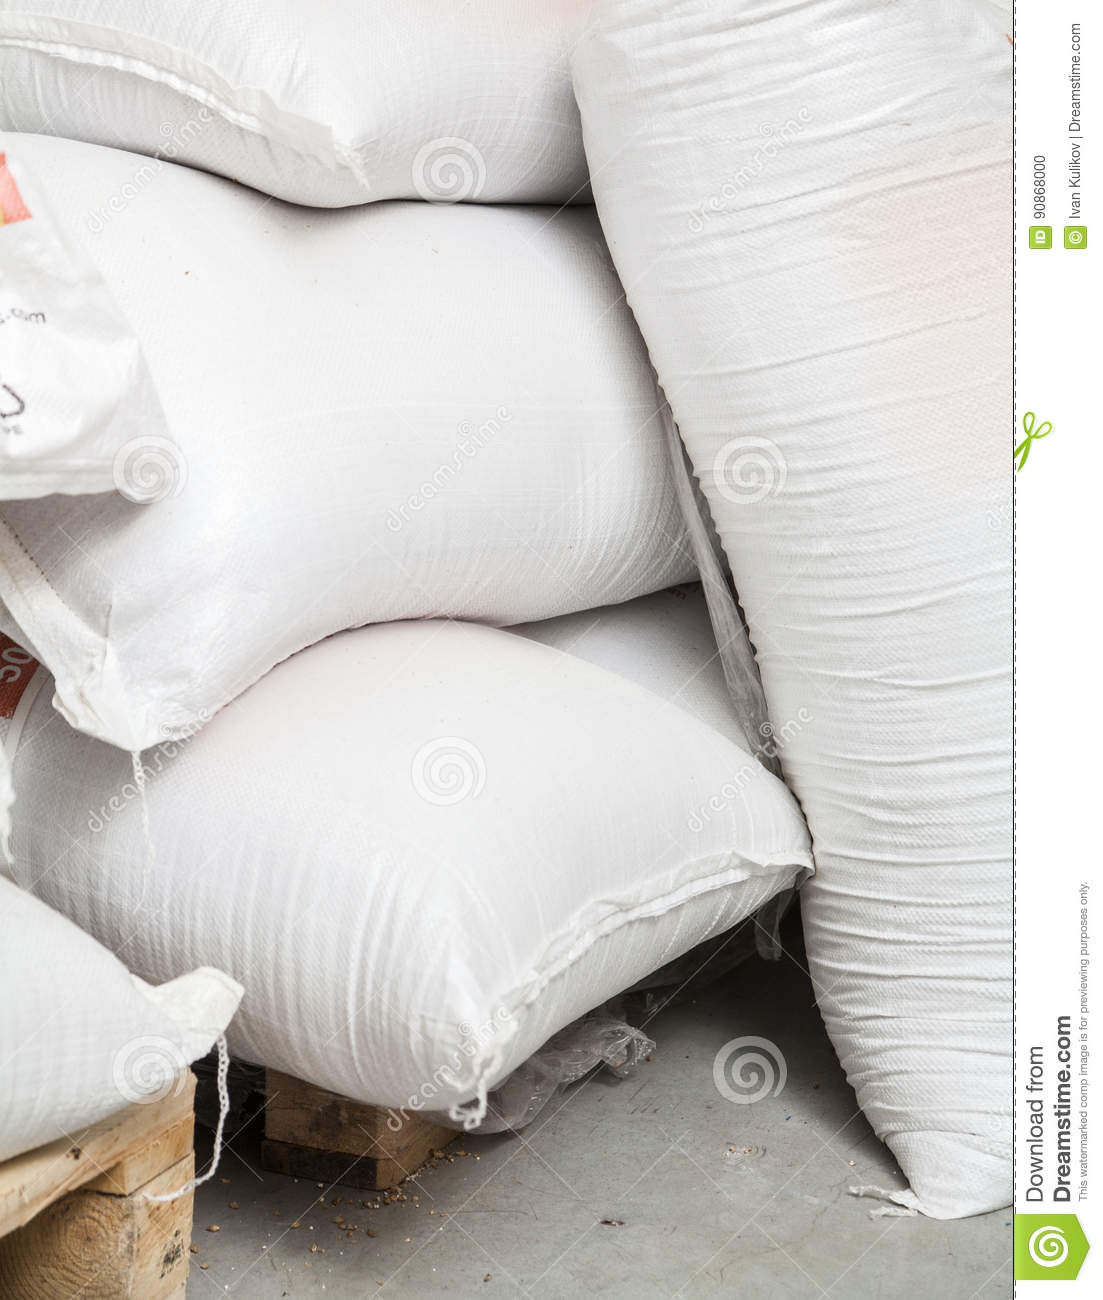 Bags with malt